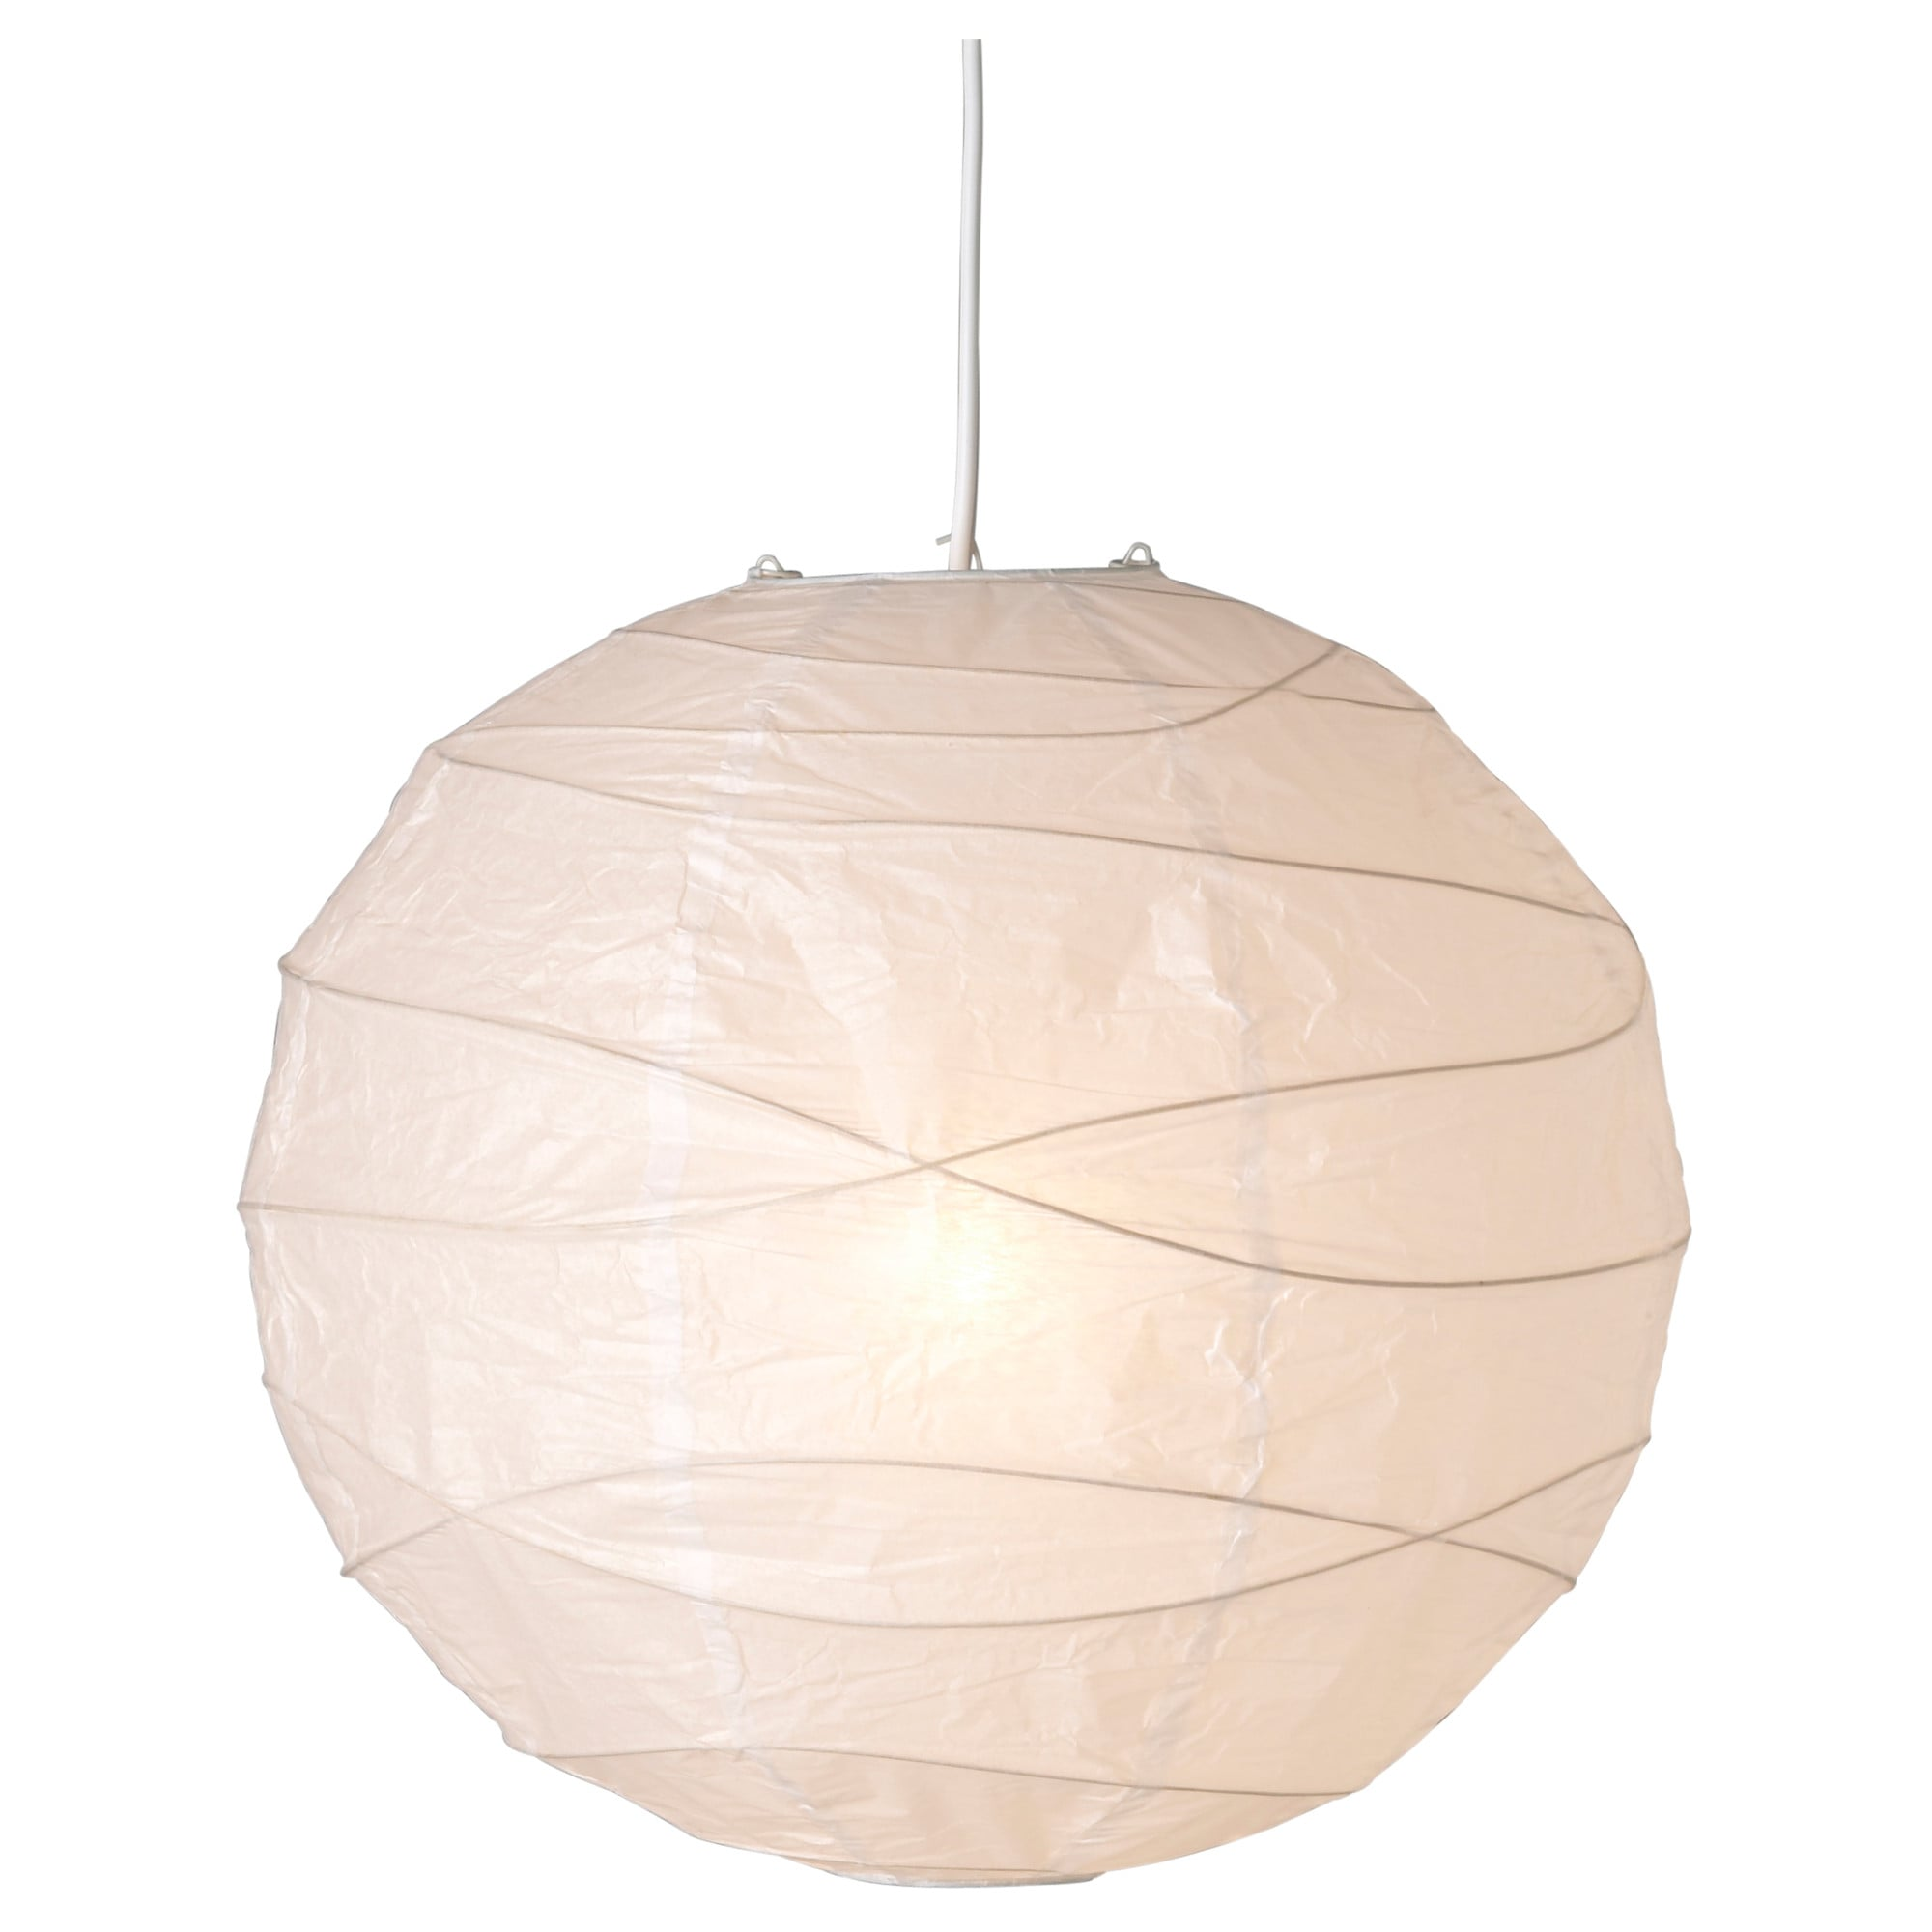 REGOLIT Pendant lamp shade - IKEA:,Lighting